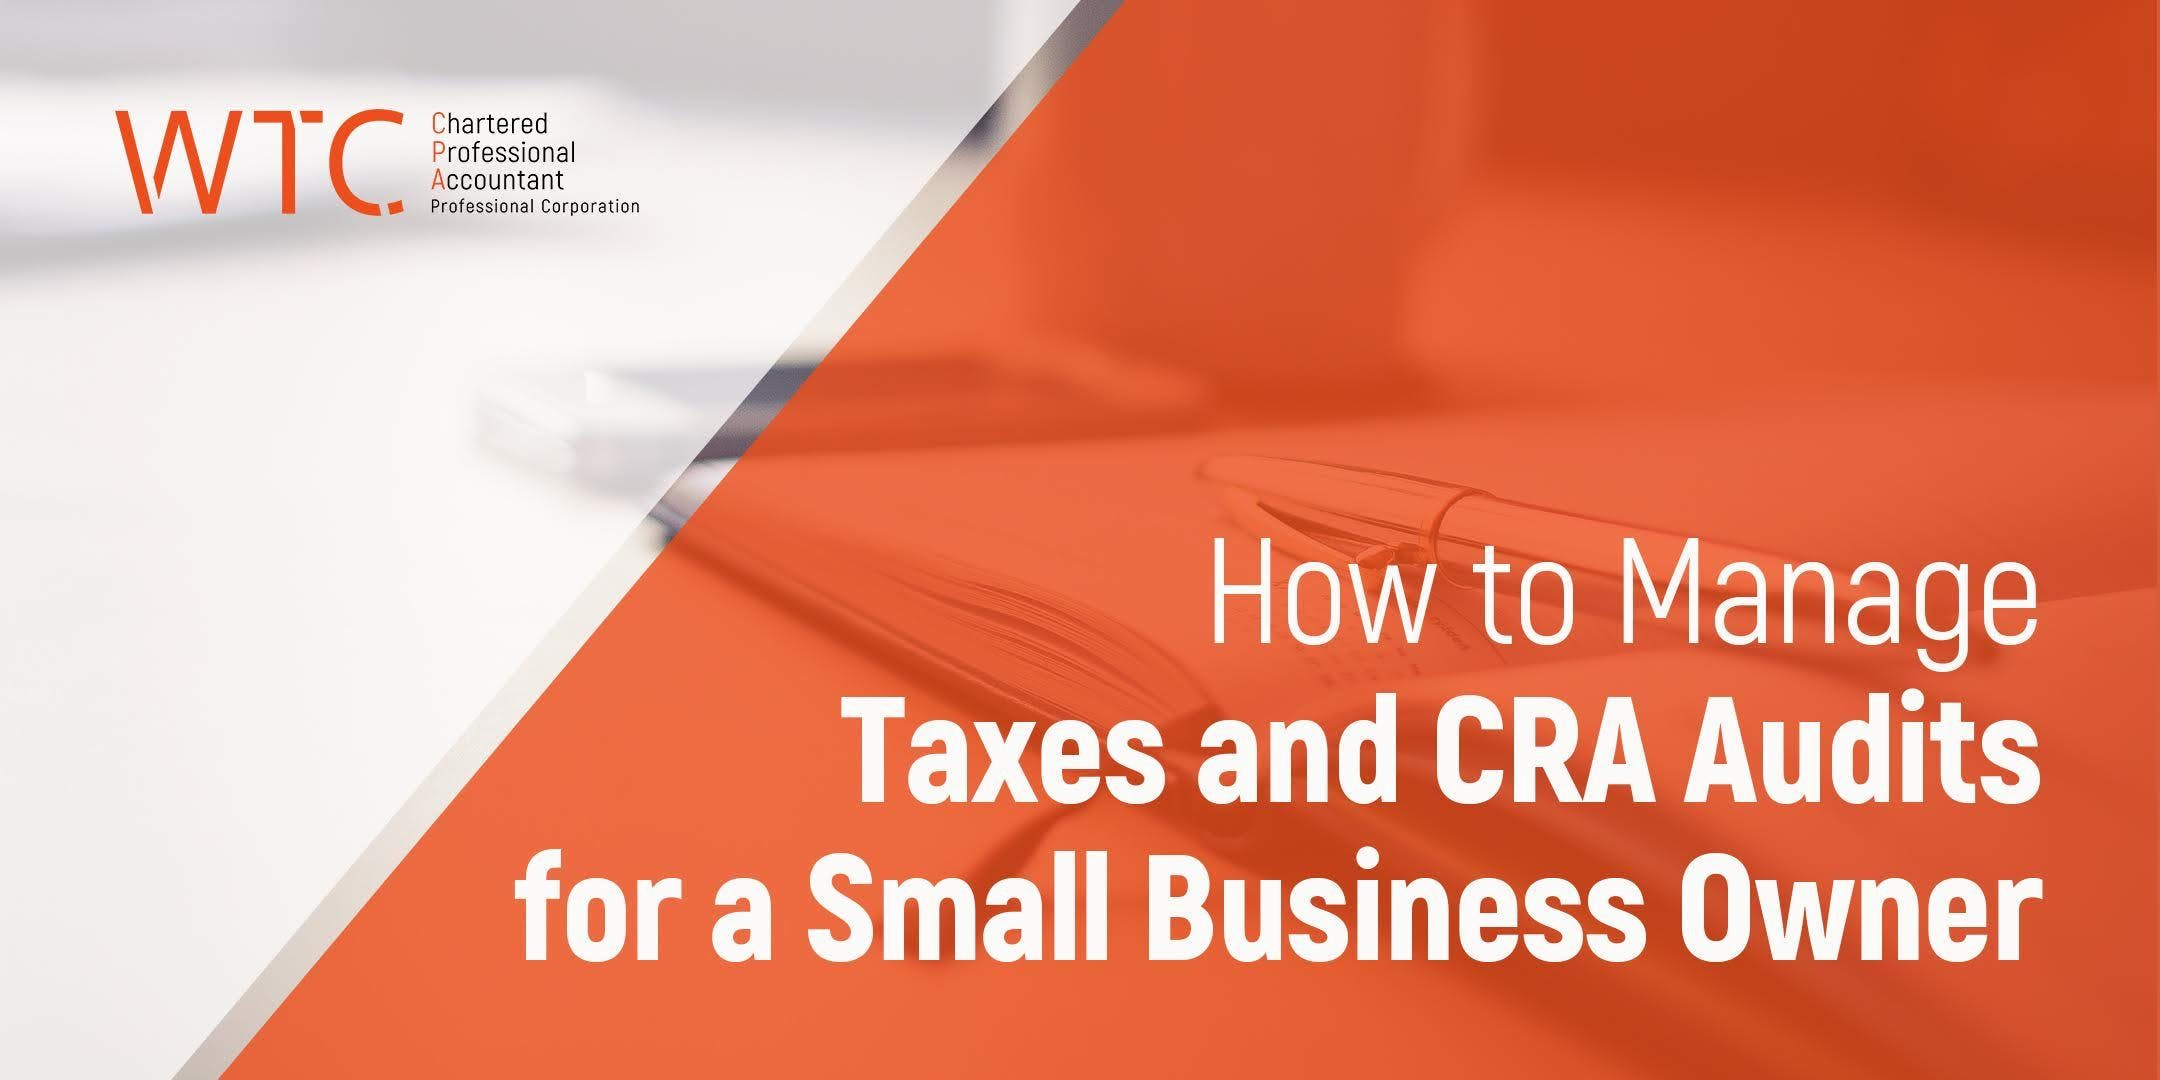 How to Manage Taxes and CRA Audits for a Smal